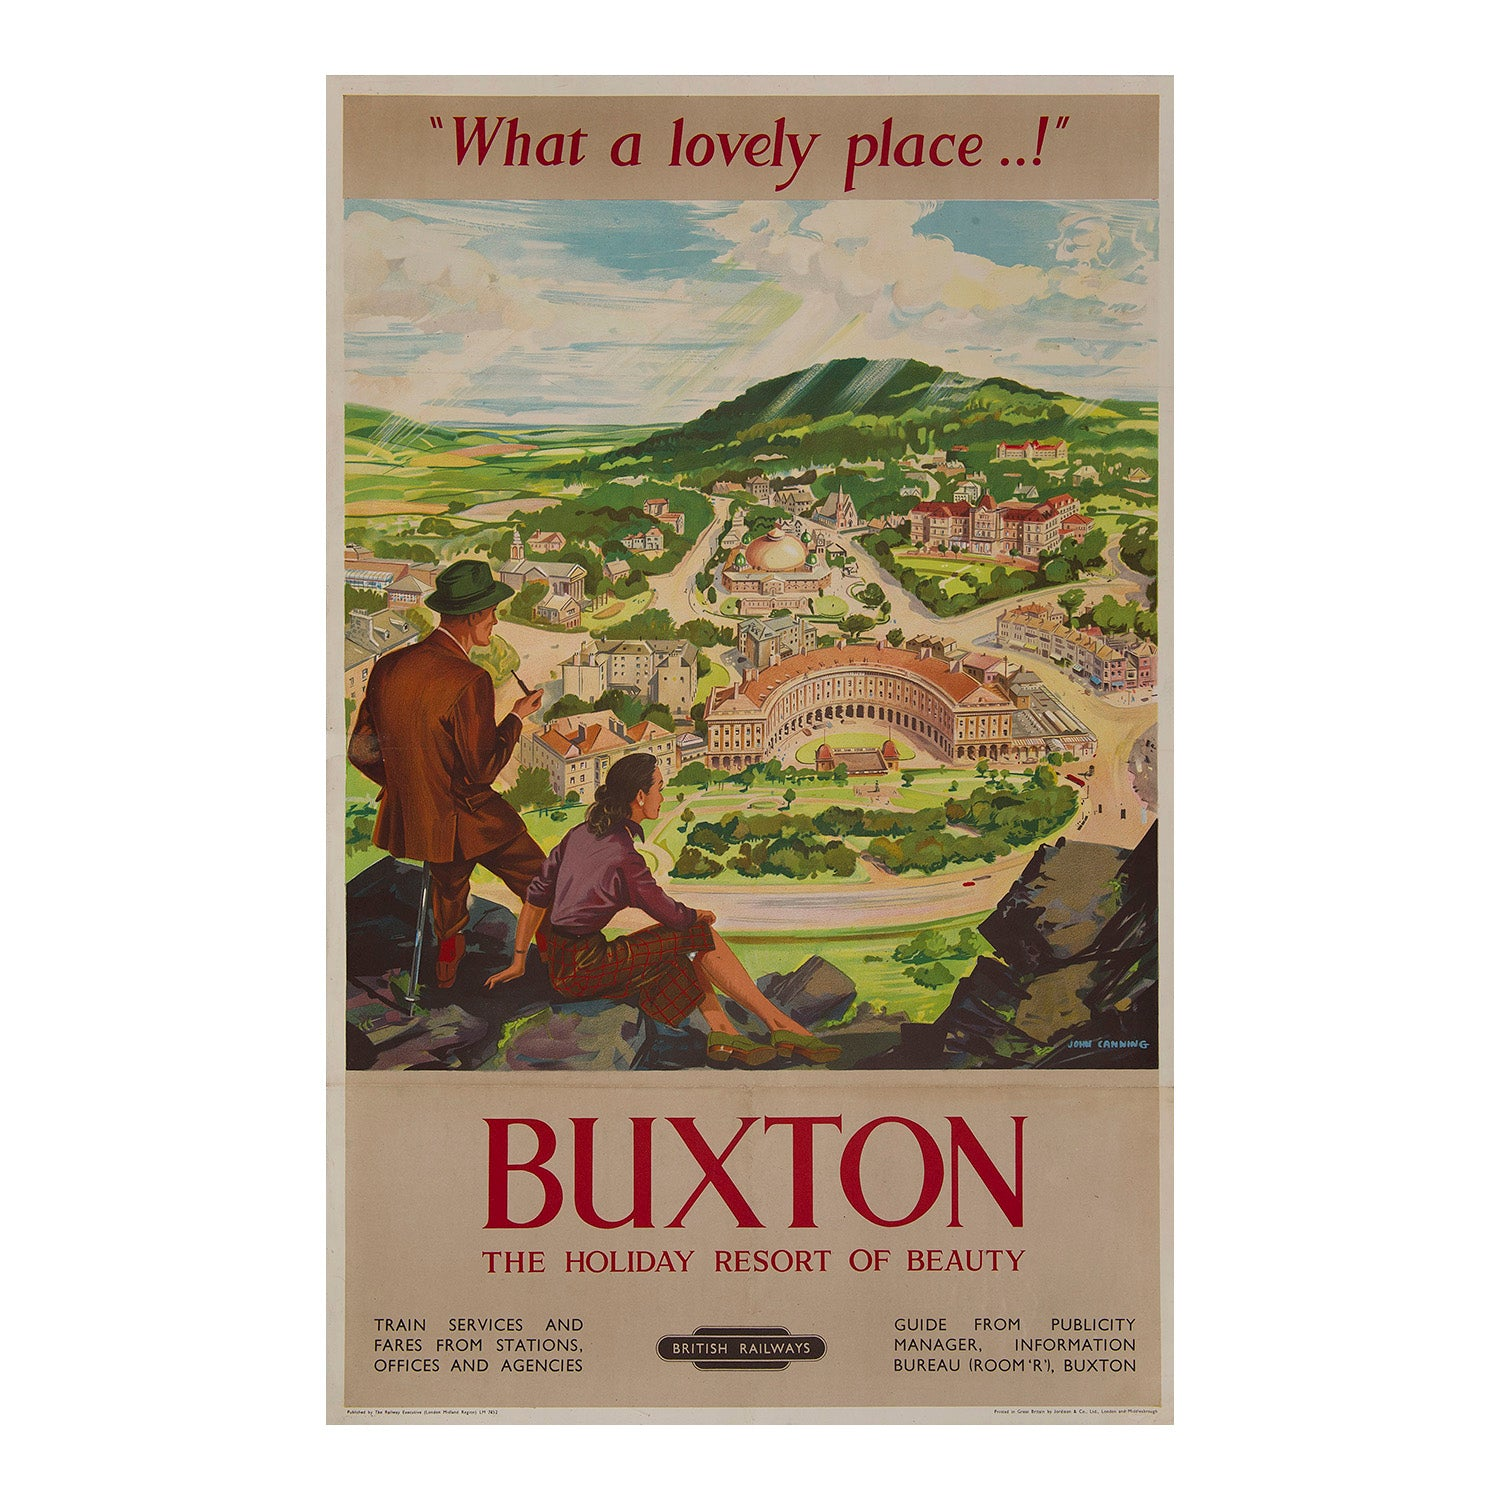 Buxton. The holiday resort of beauty